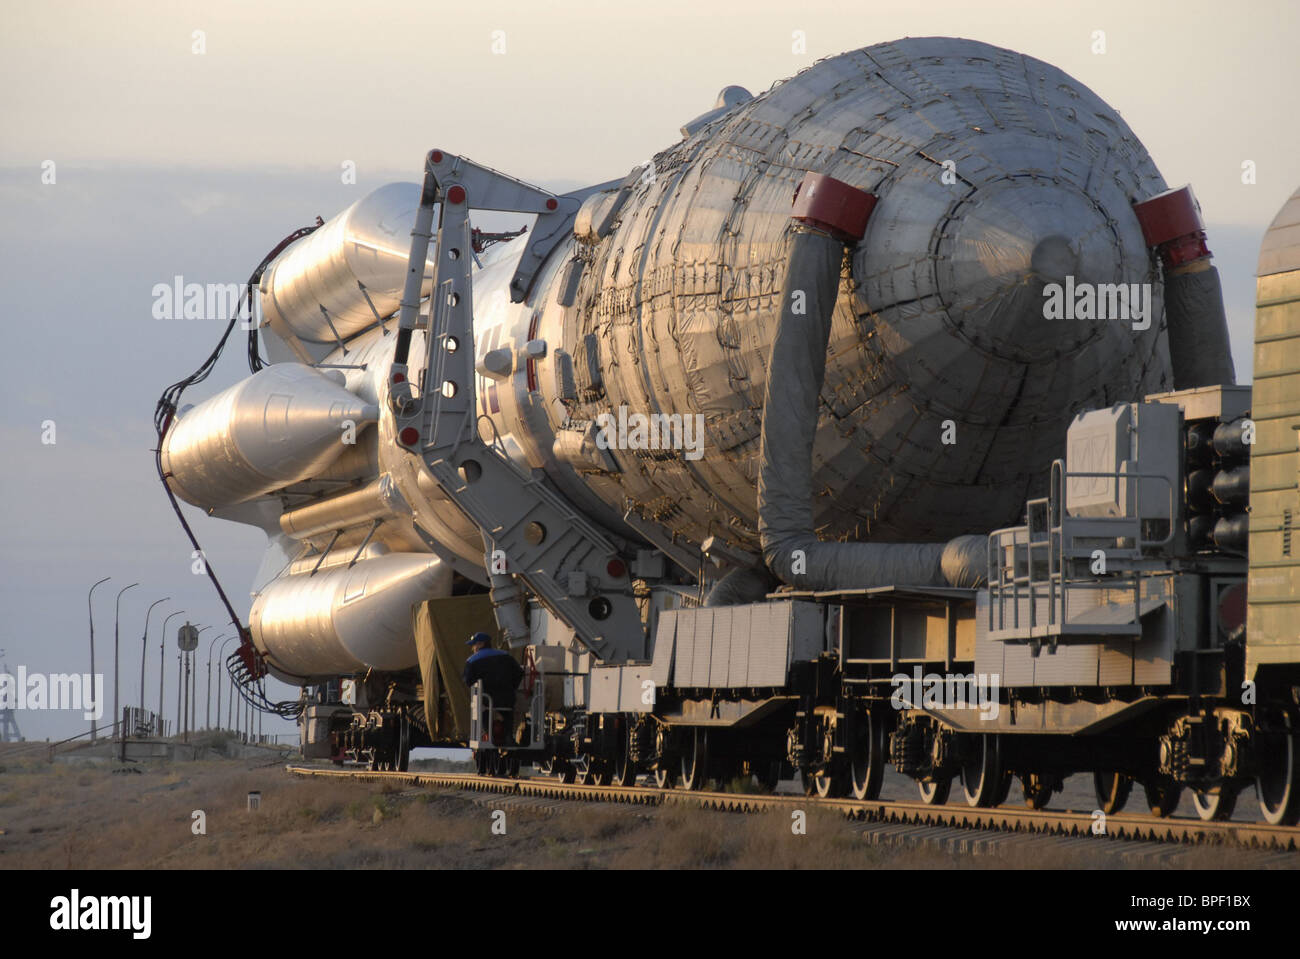 Proton- M space rocket with booster Breeze-M to be launched from Baikonur cosmodrome - Stock Image